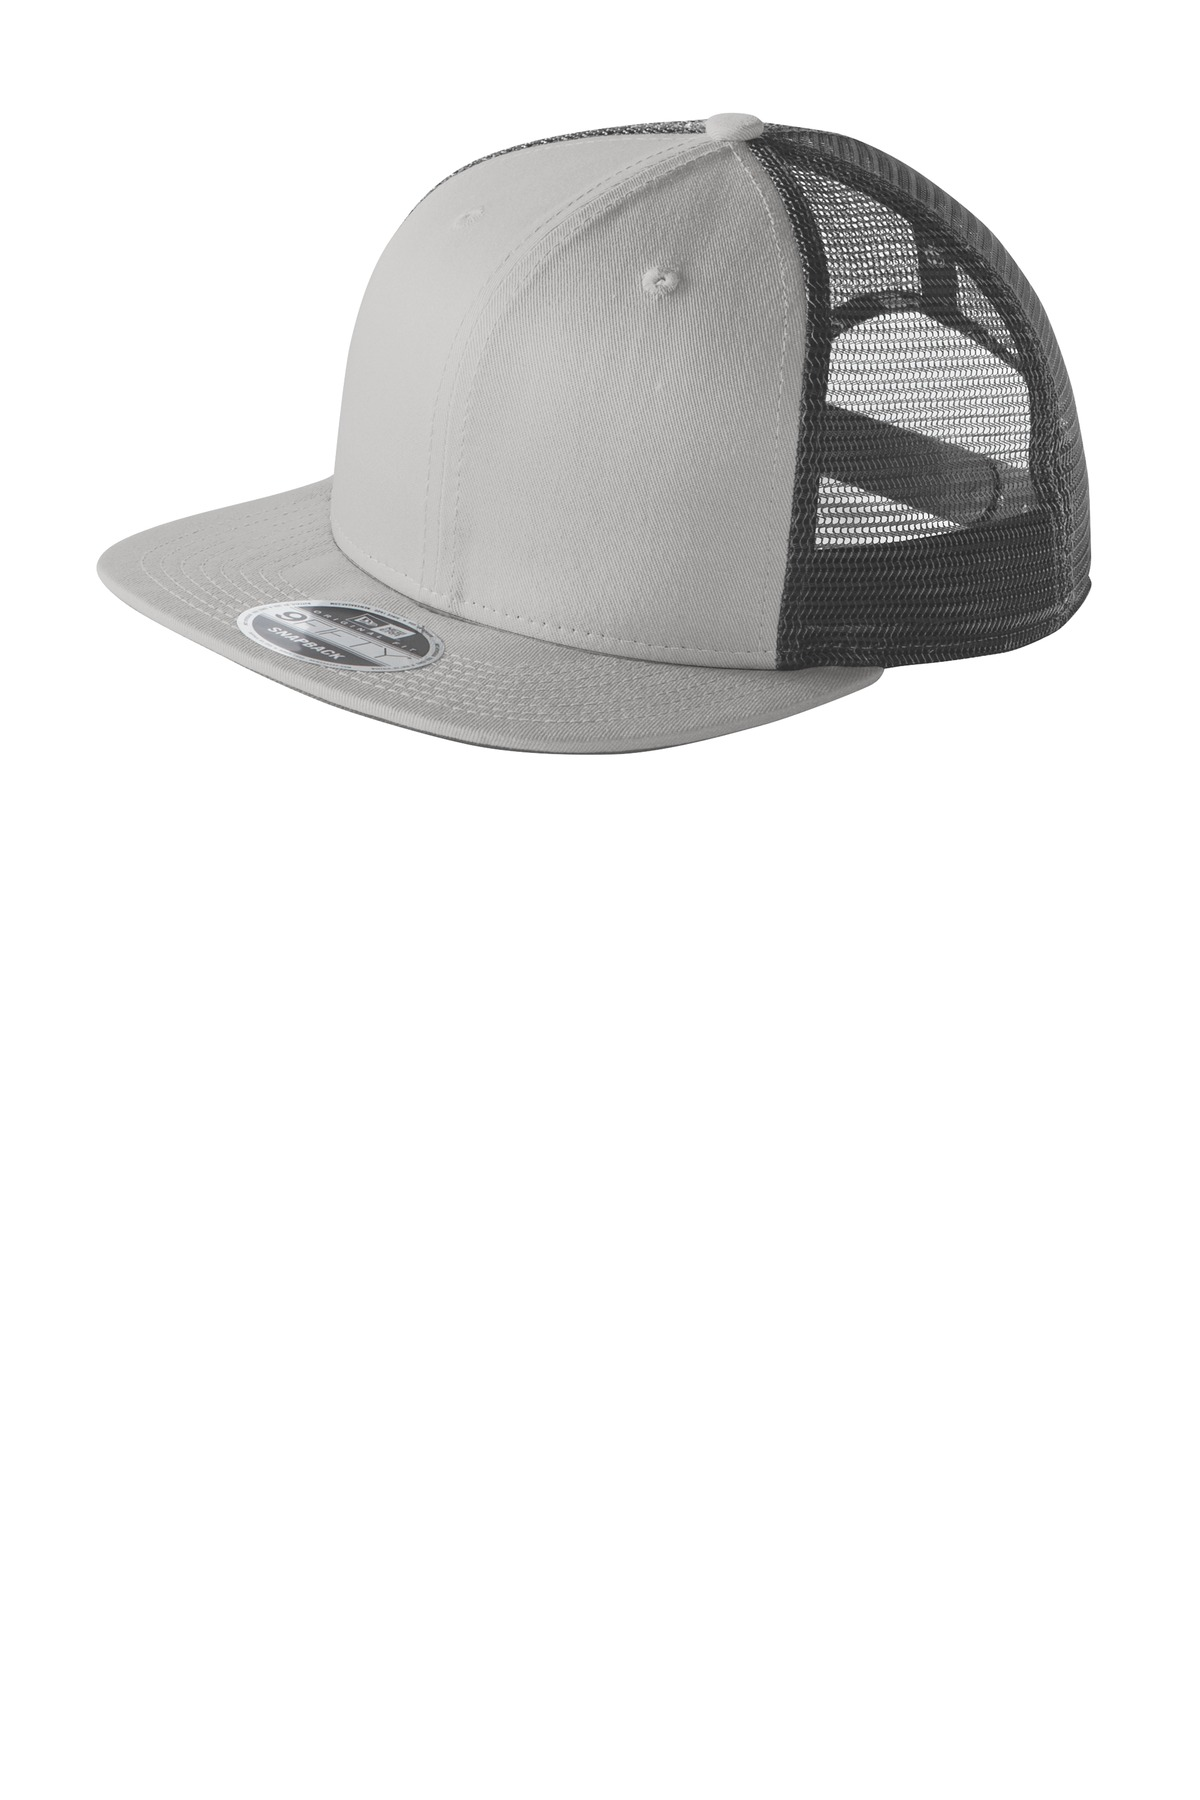 New Era ®  Original Fit Snapback Trucker Cap. NE403 - Grey/ Graphite